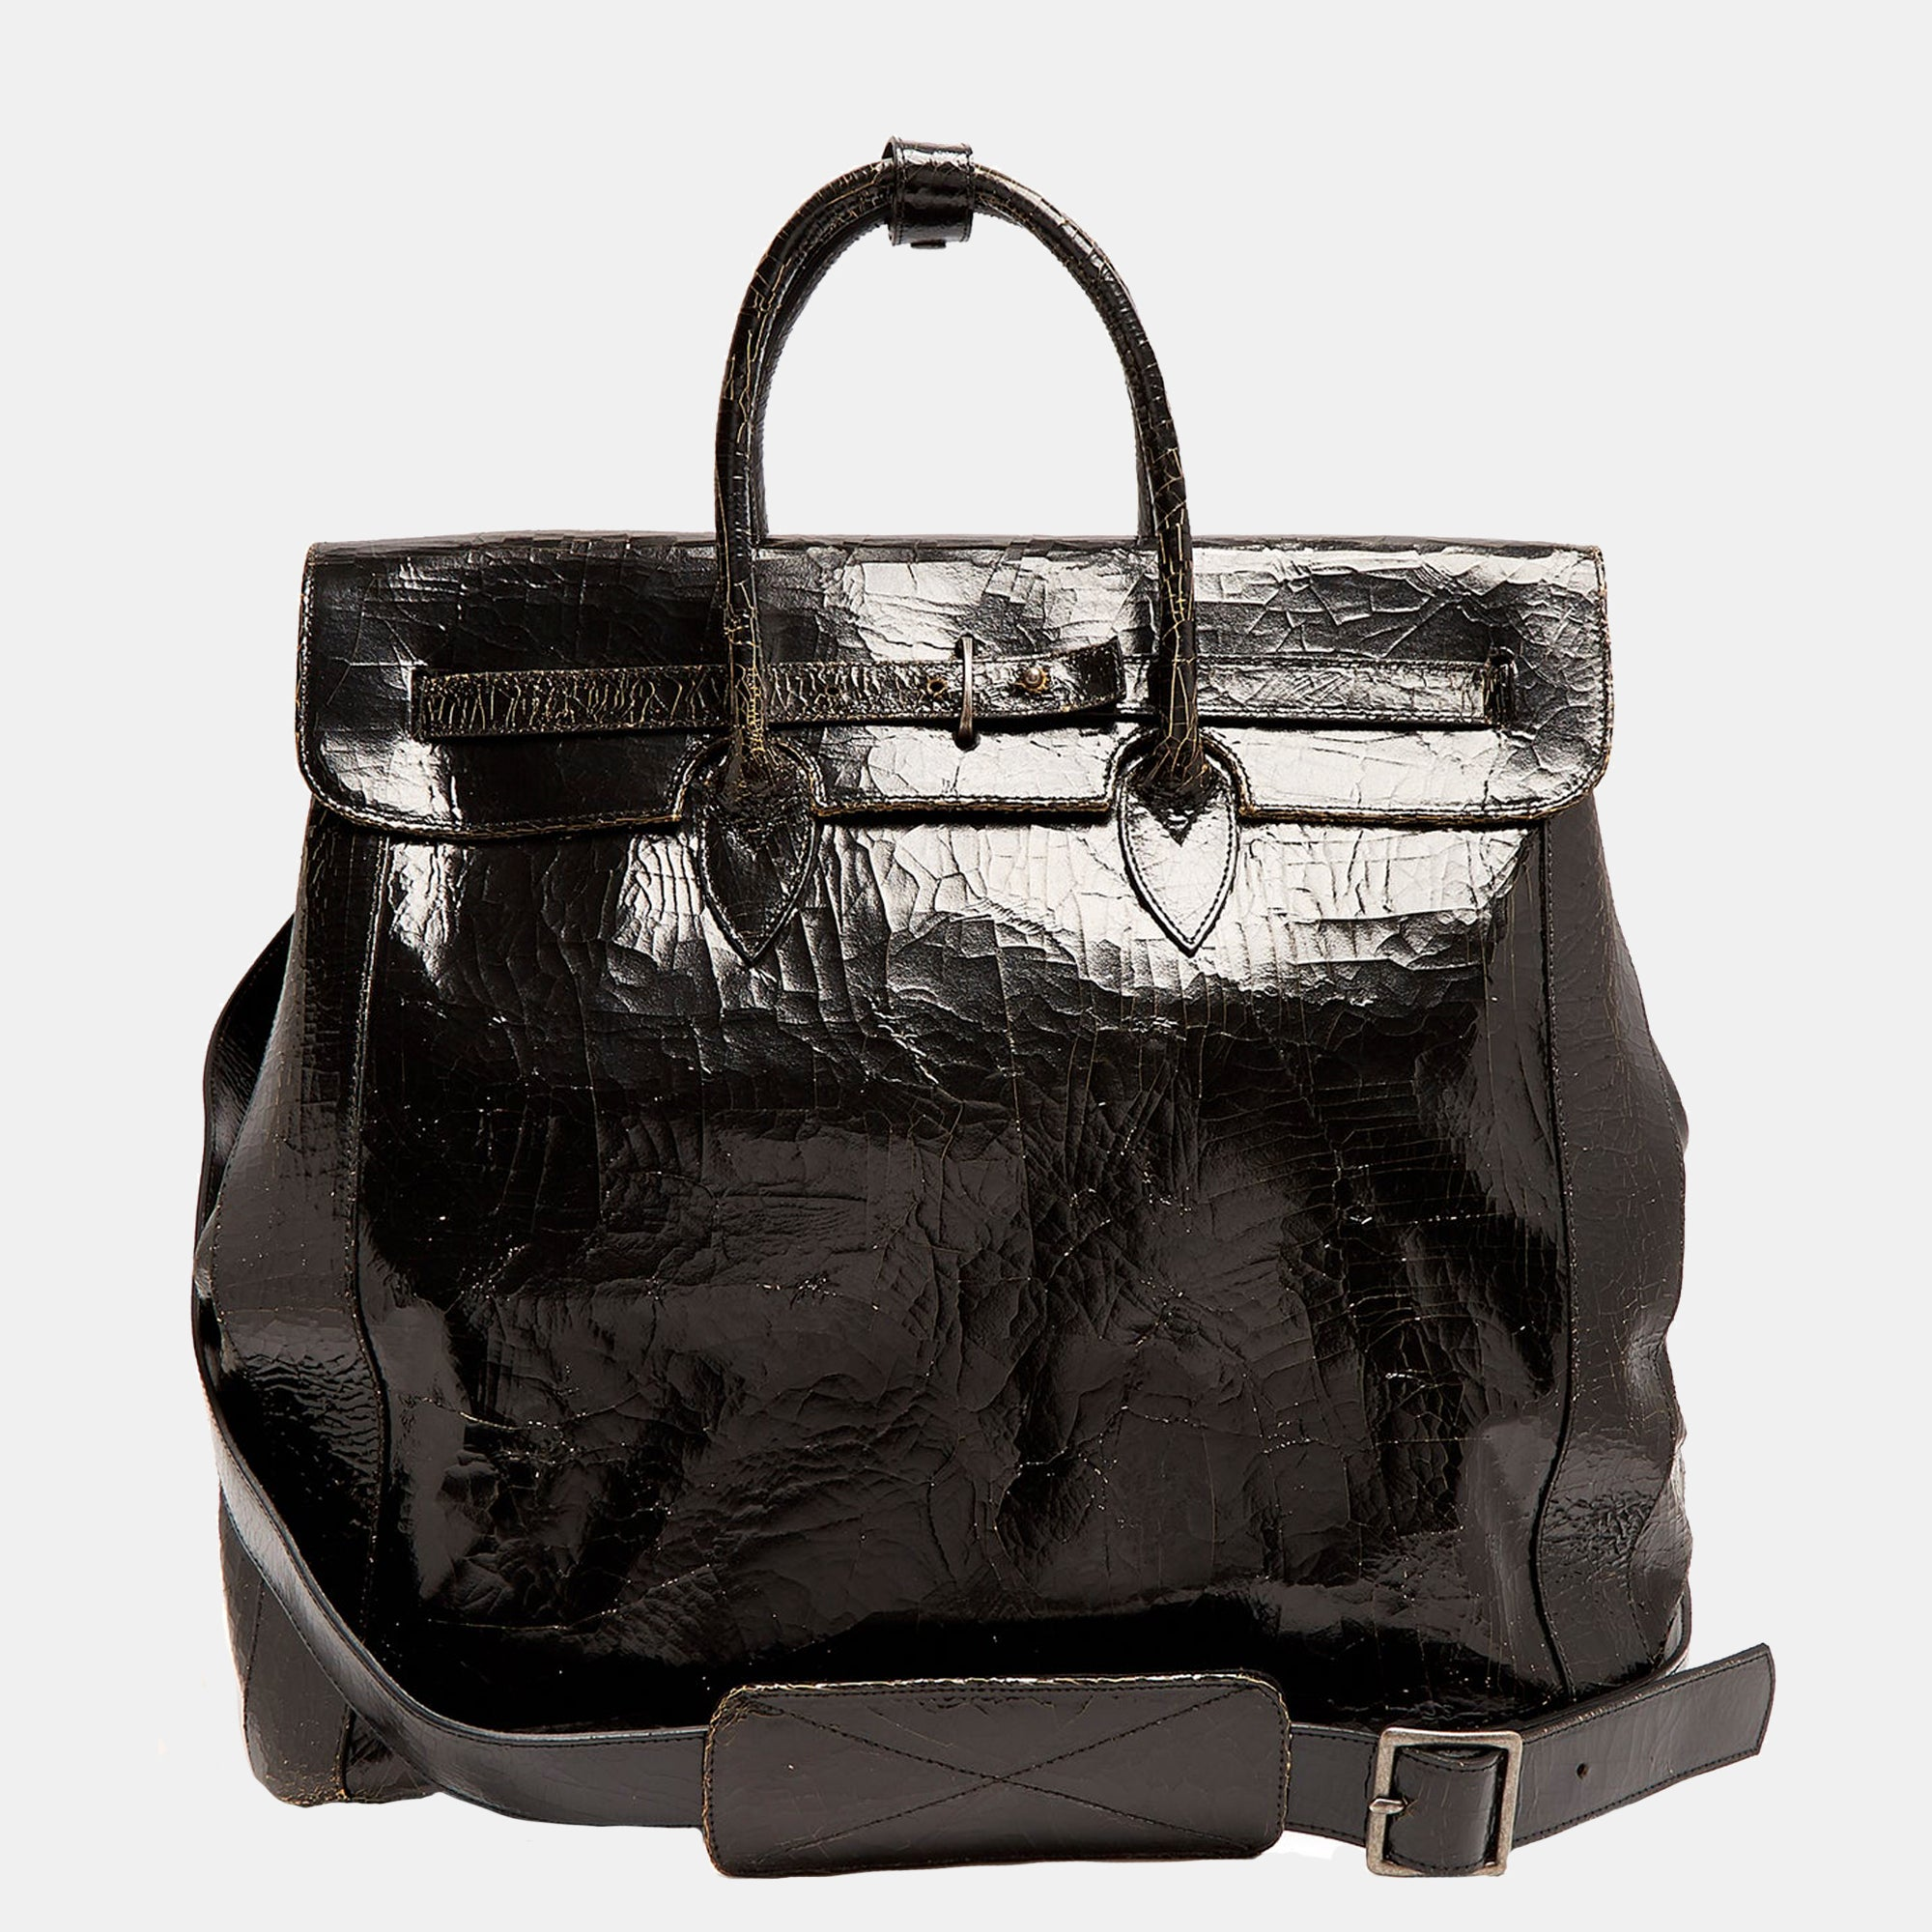 Luxury leather sustainable silk carry-on carry all luggage